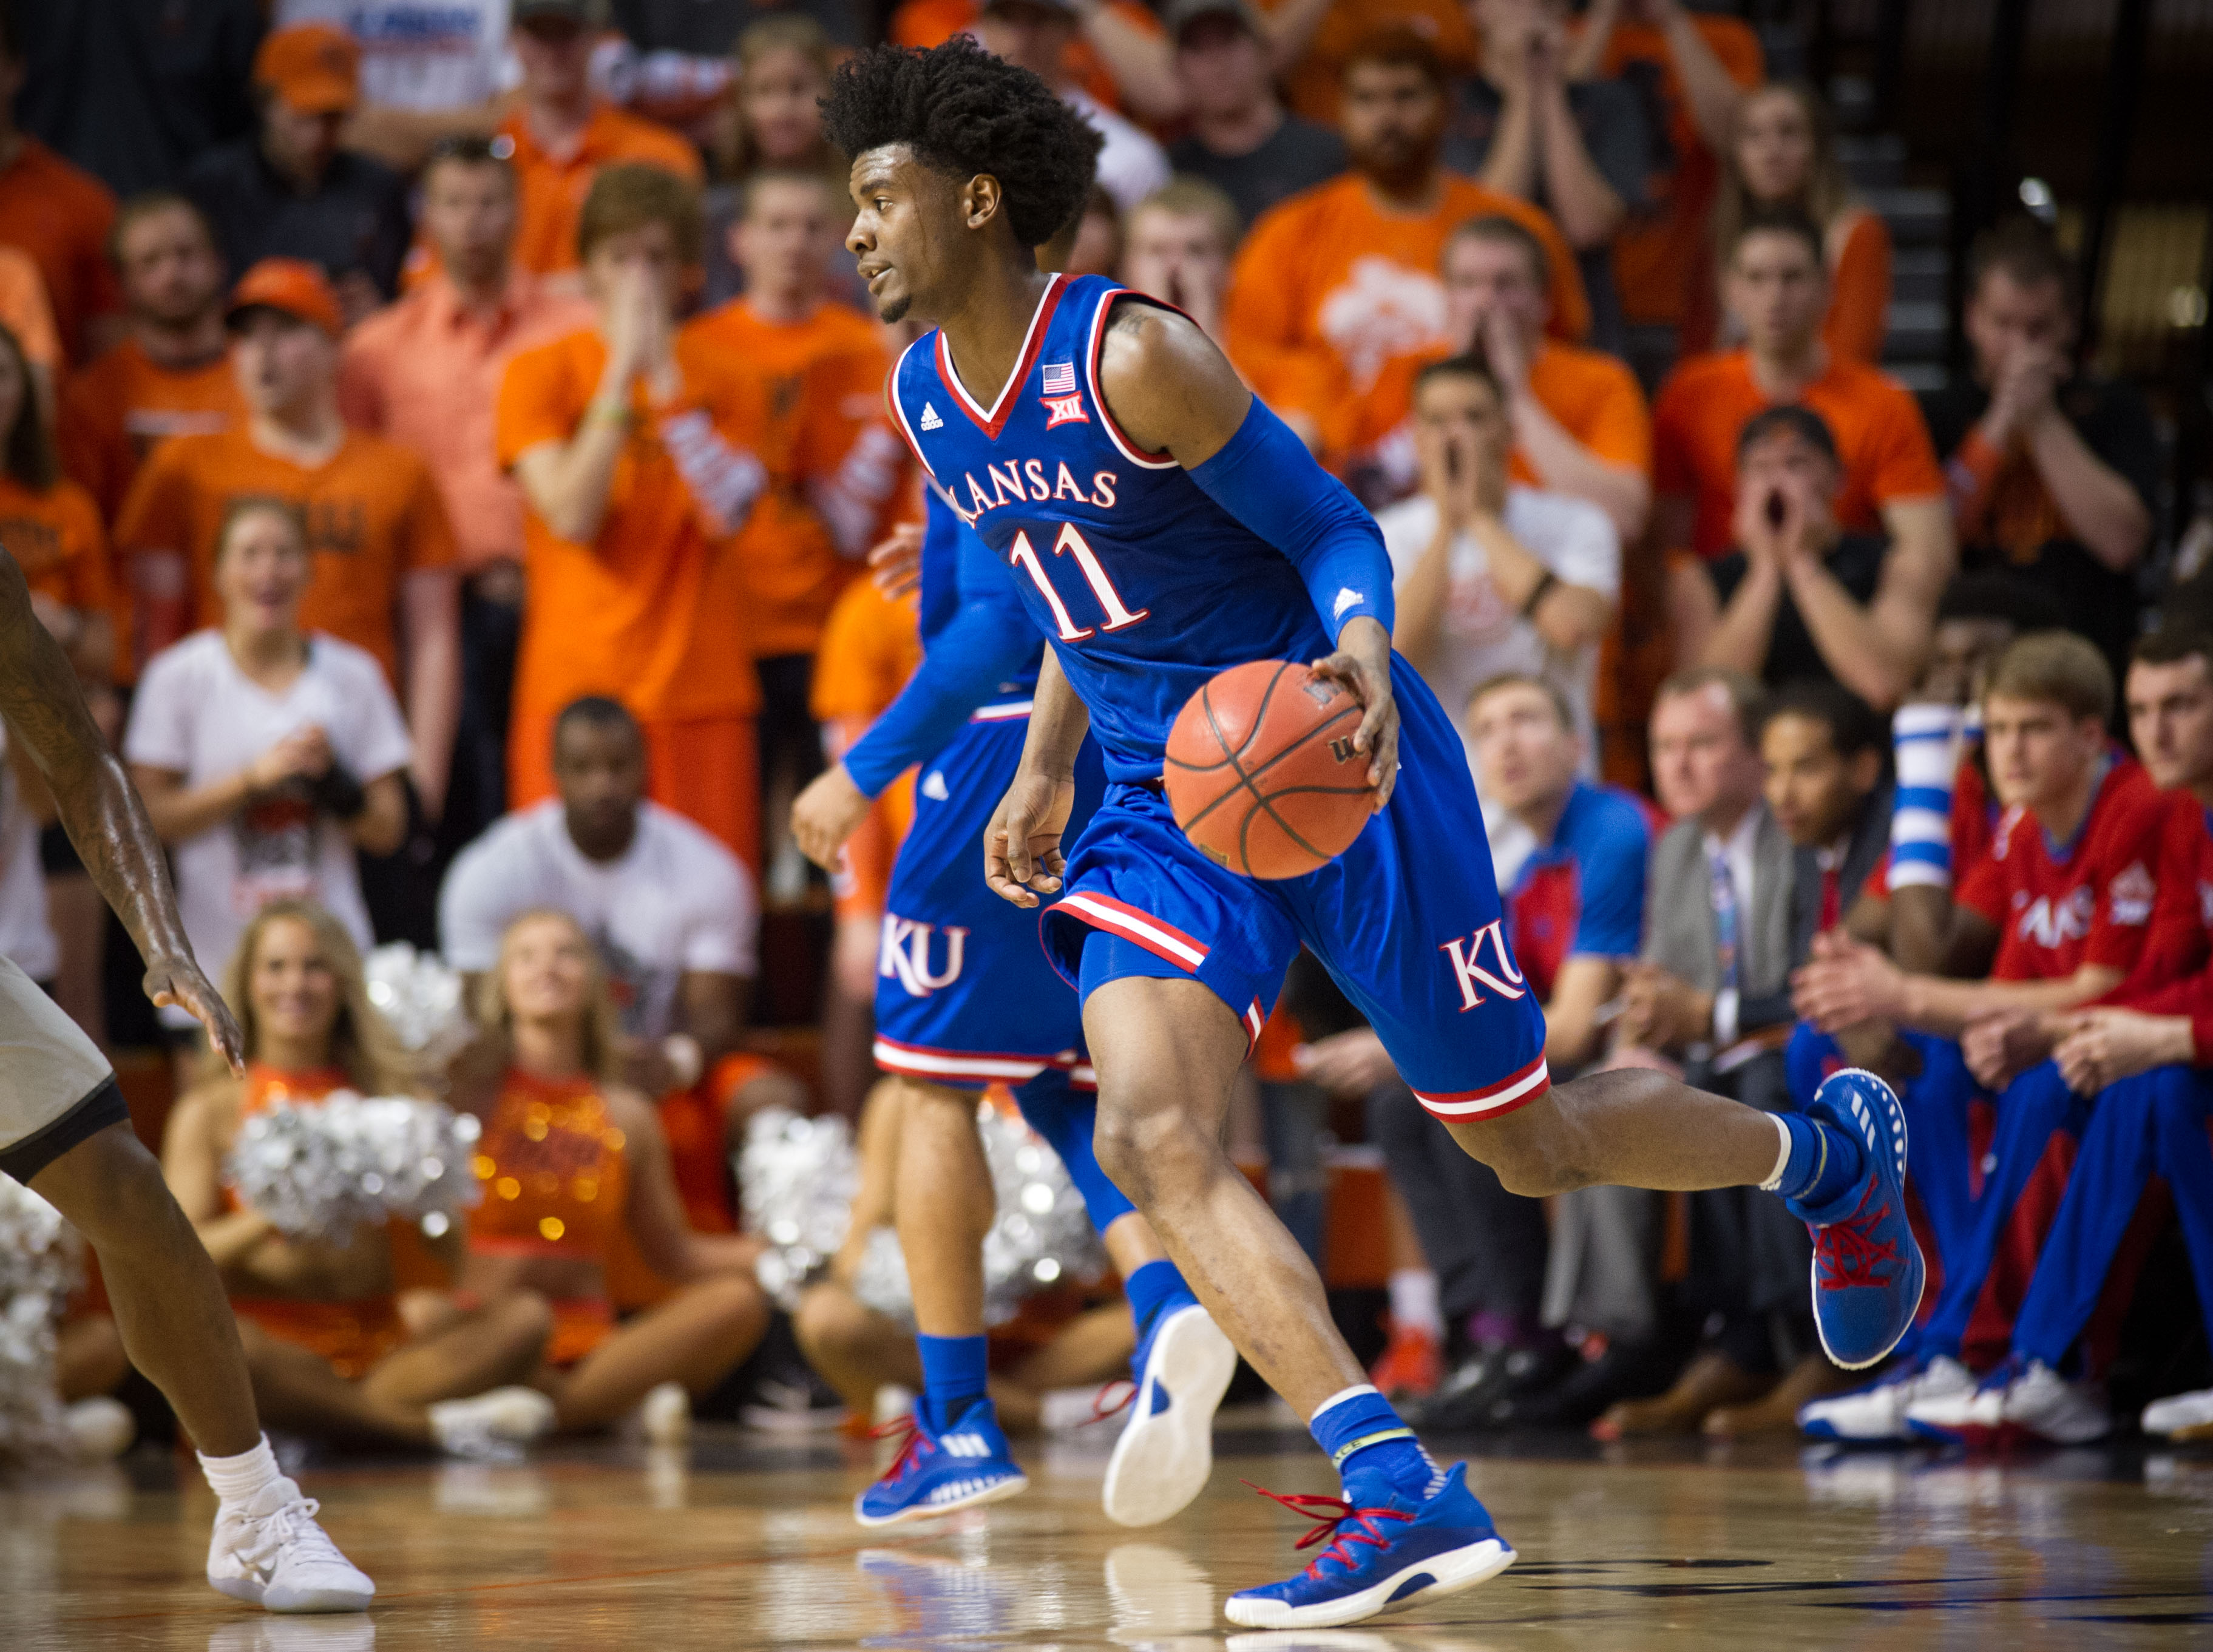 nba the ncaa On thursday and friday, in arenas across the country, a number of future nba stars will take the court in hopes of leading their college teams to the final four — or national championship glory .